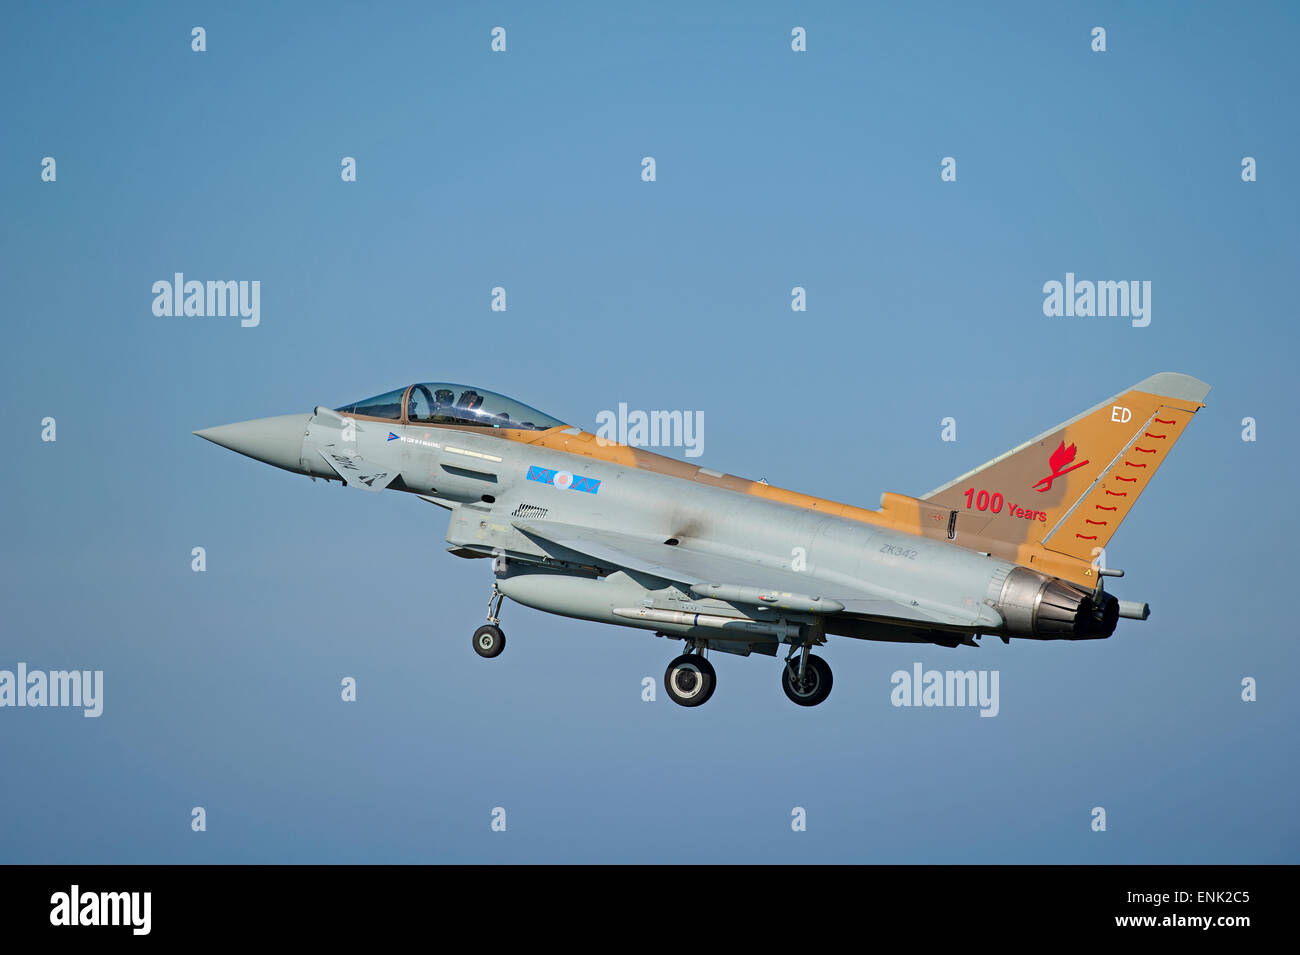 RAF Eurofighter Typhoon FRG4 Serial Rregistration ZA461 at Lossiemouth Scvpotland. SCO 9727. - Stock Image